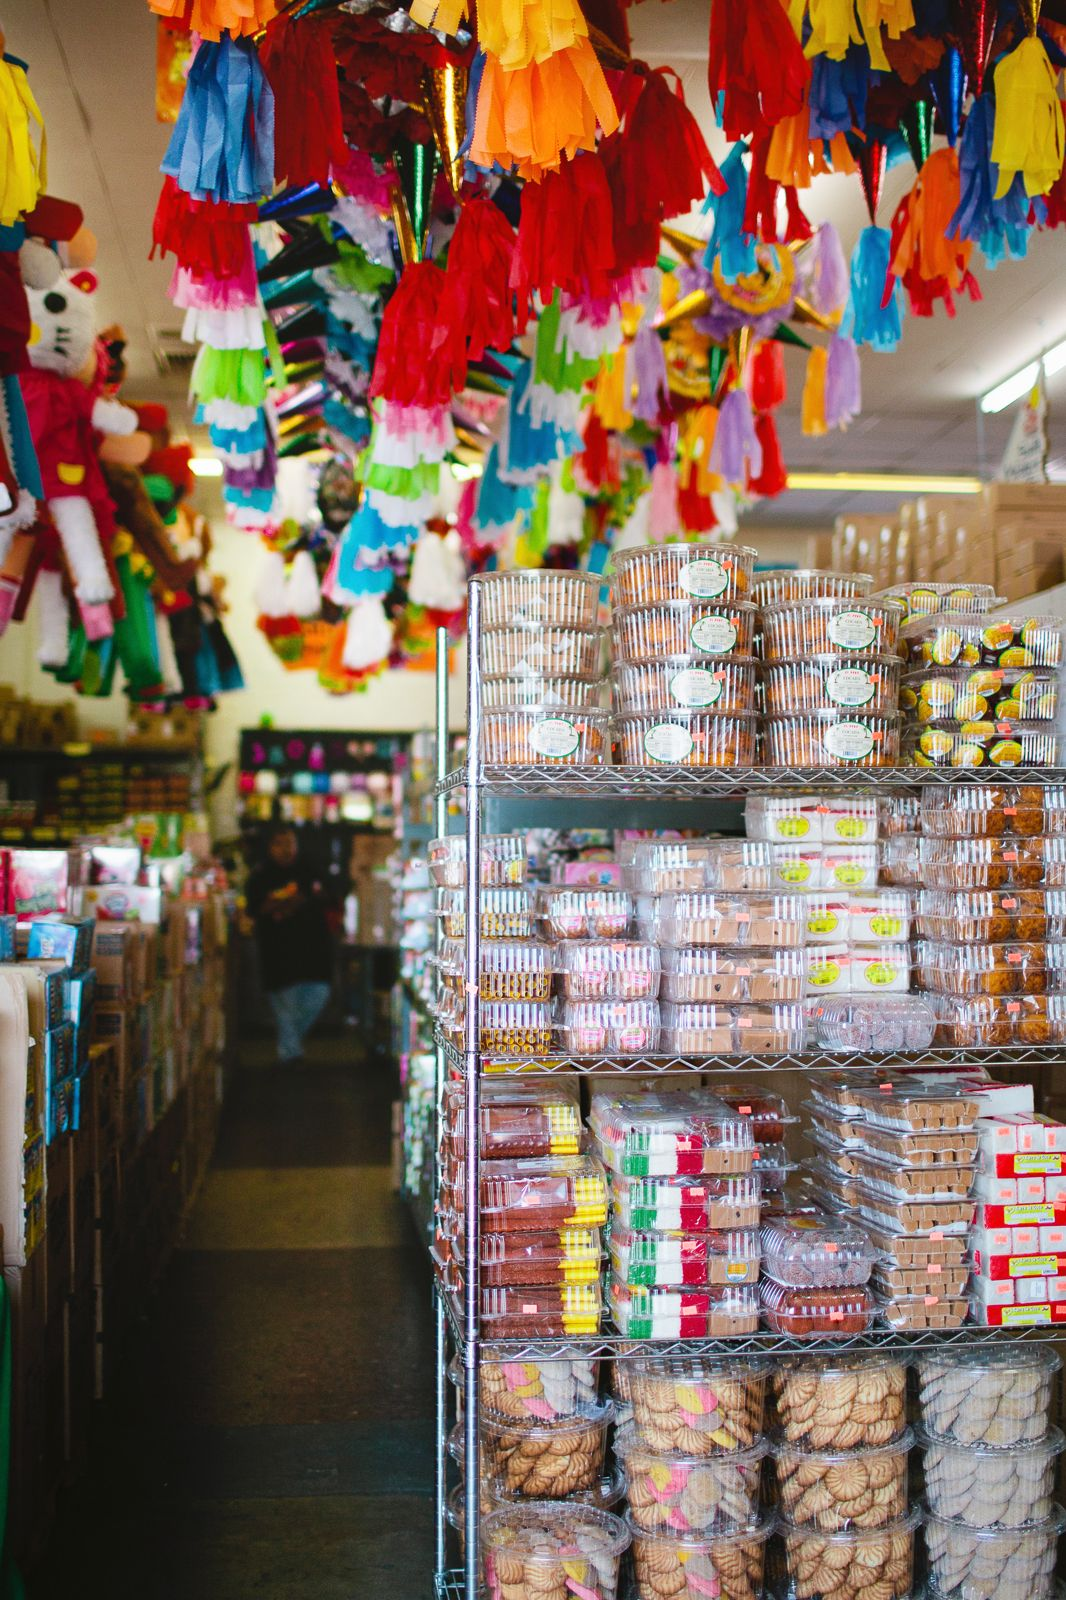 Best Candy Stores Los Angeles - Sweets, Chocolate, Rare